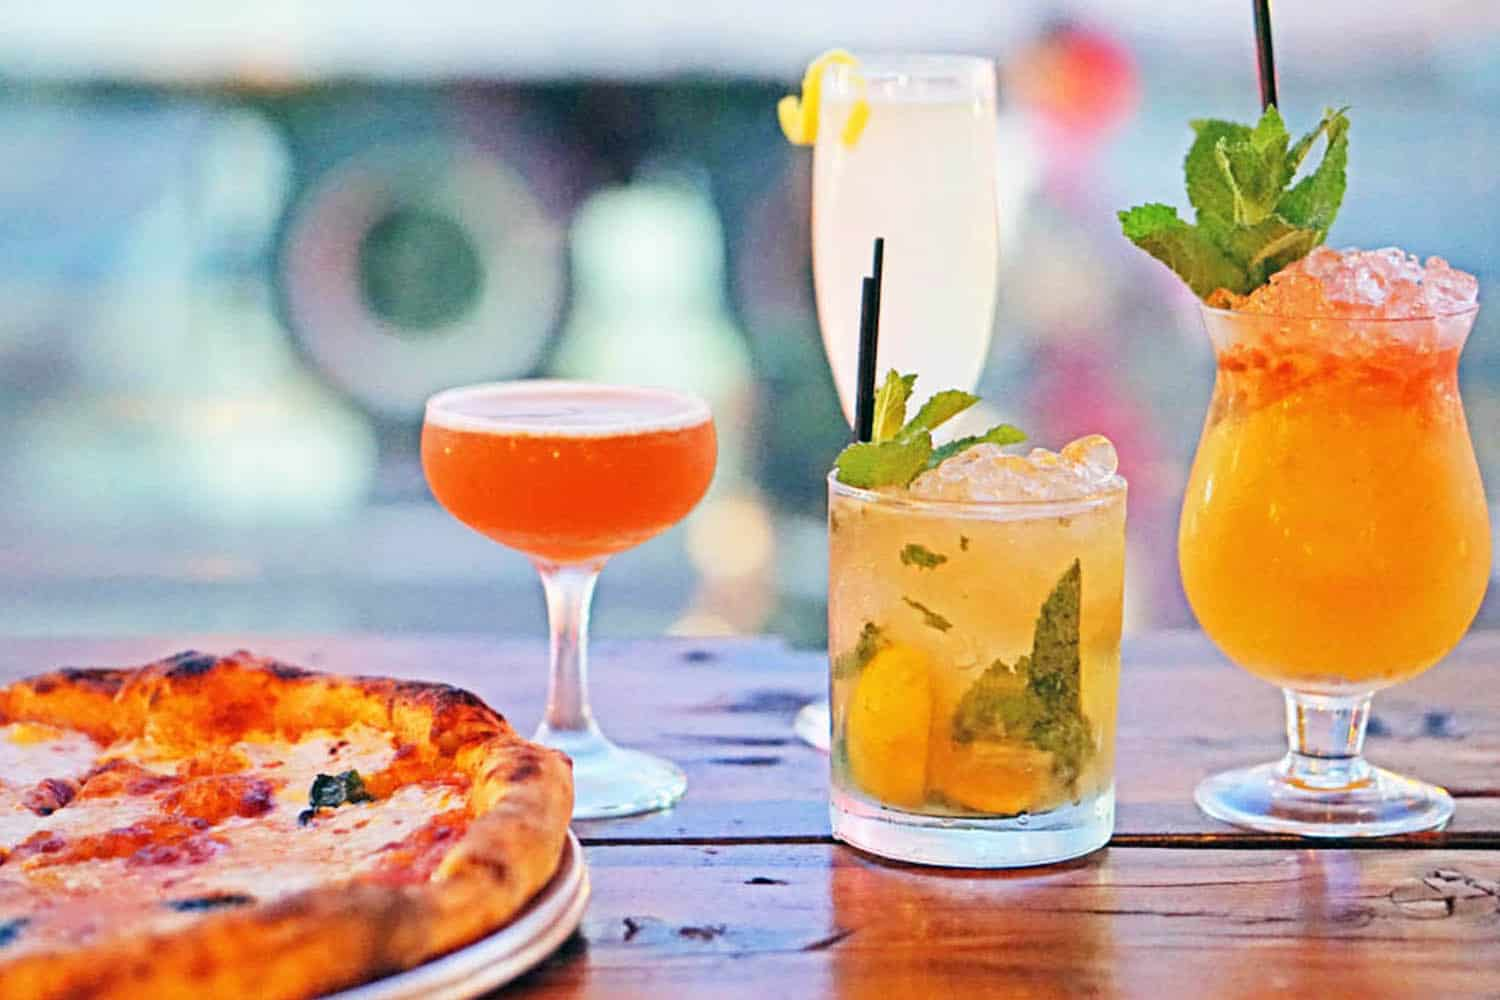 Pizza from Wheater restaurant with various cocktails